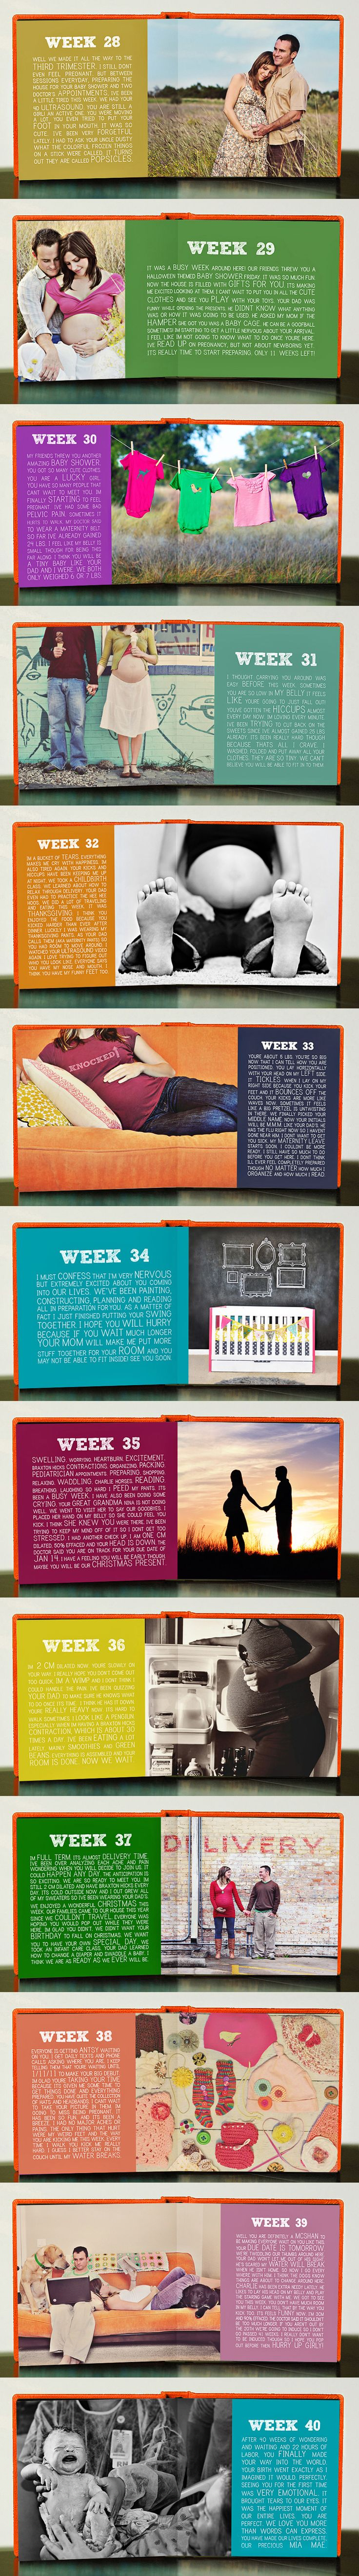 maternity book. This is seriously the coolest thing ever